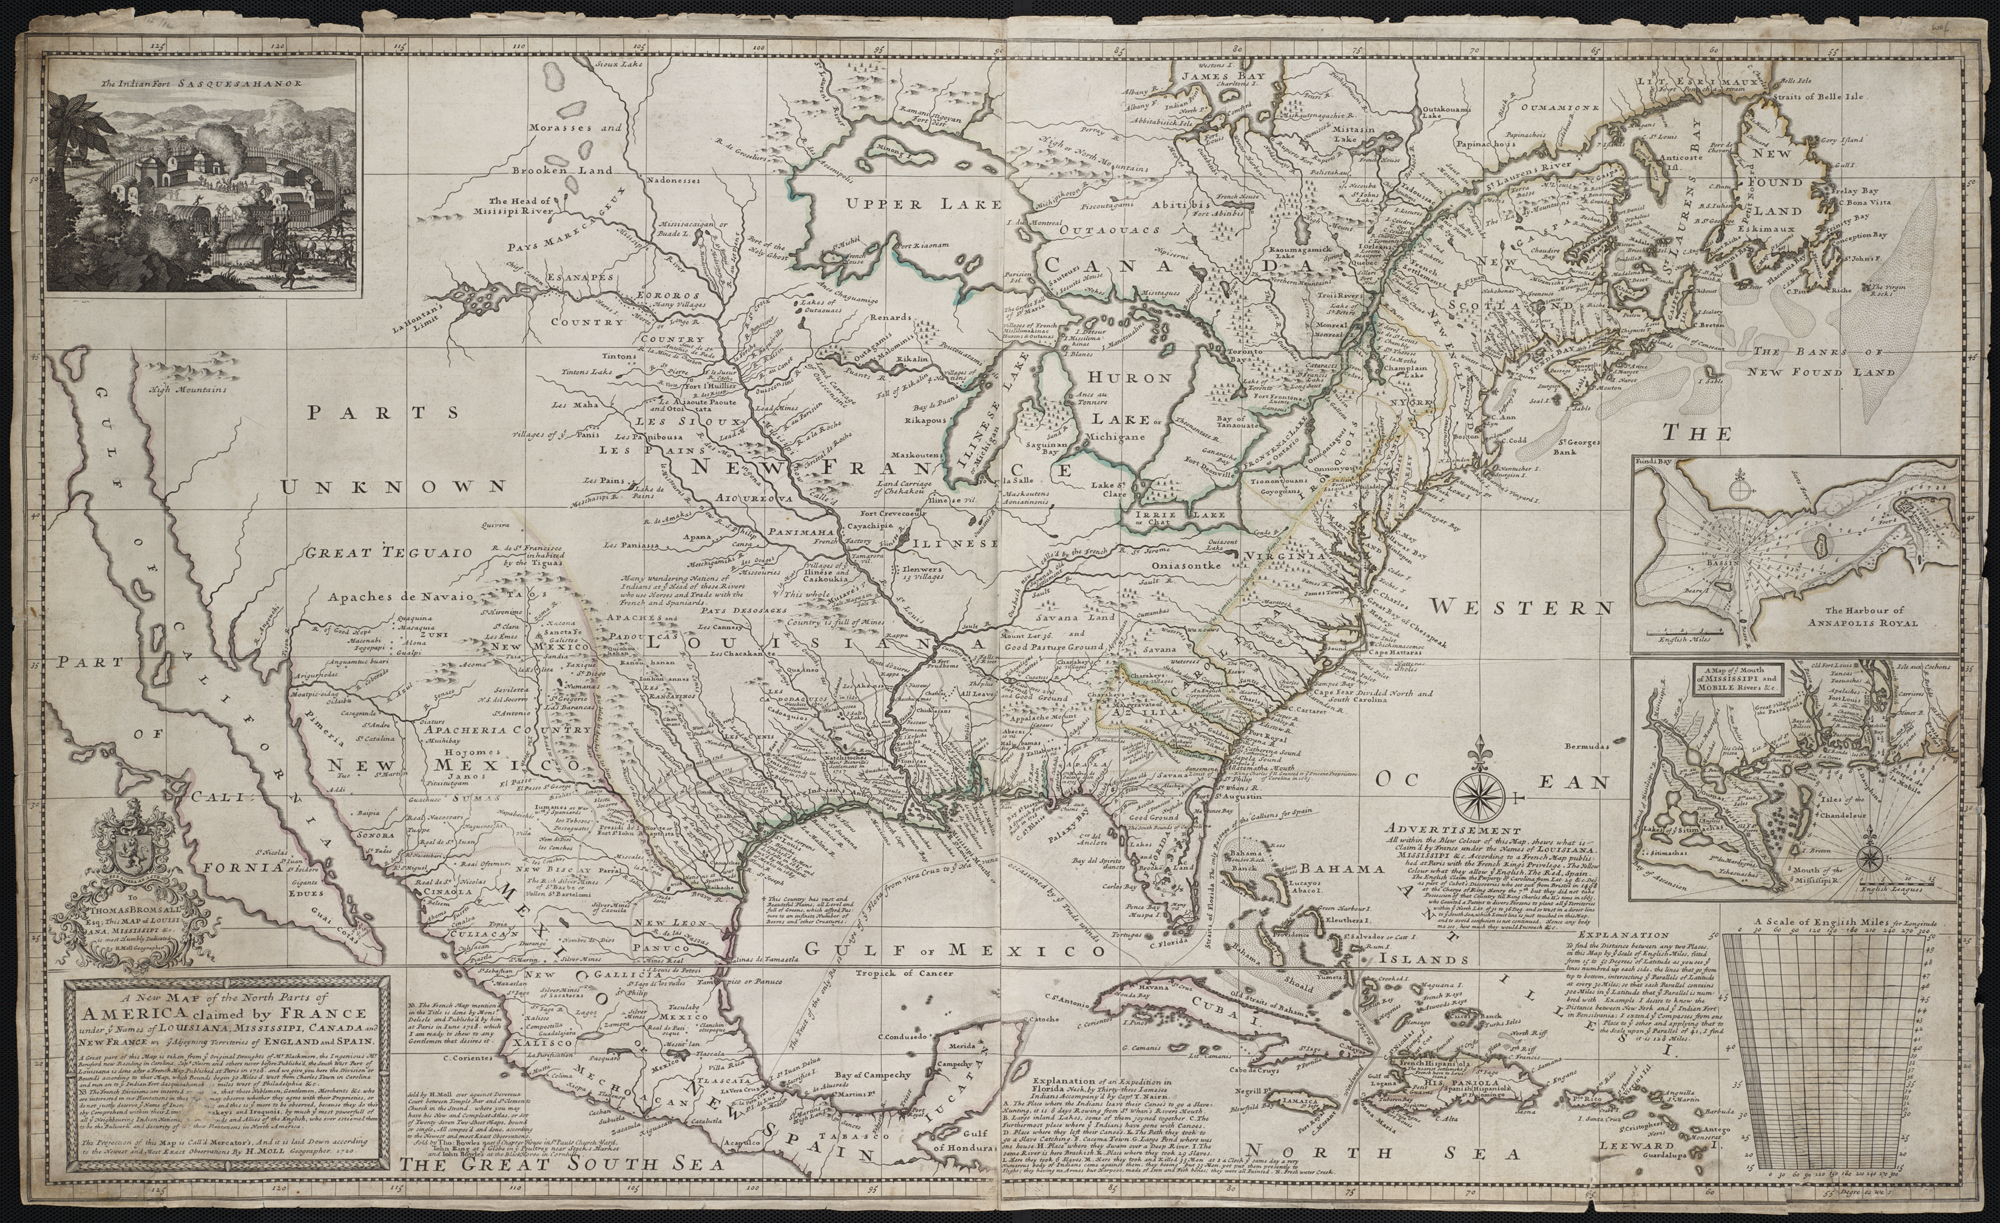 an analysis of the colonization of america The european colonization of the americas describes the history of the settlement and establishment of control of the continents of the americas by most of the naval powers of europe.